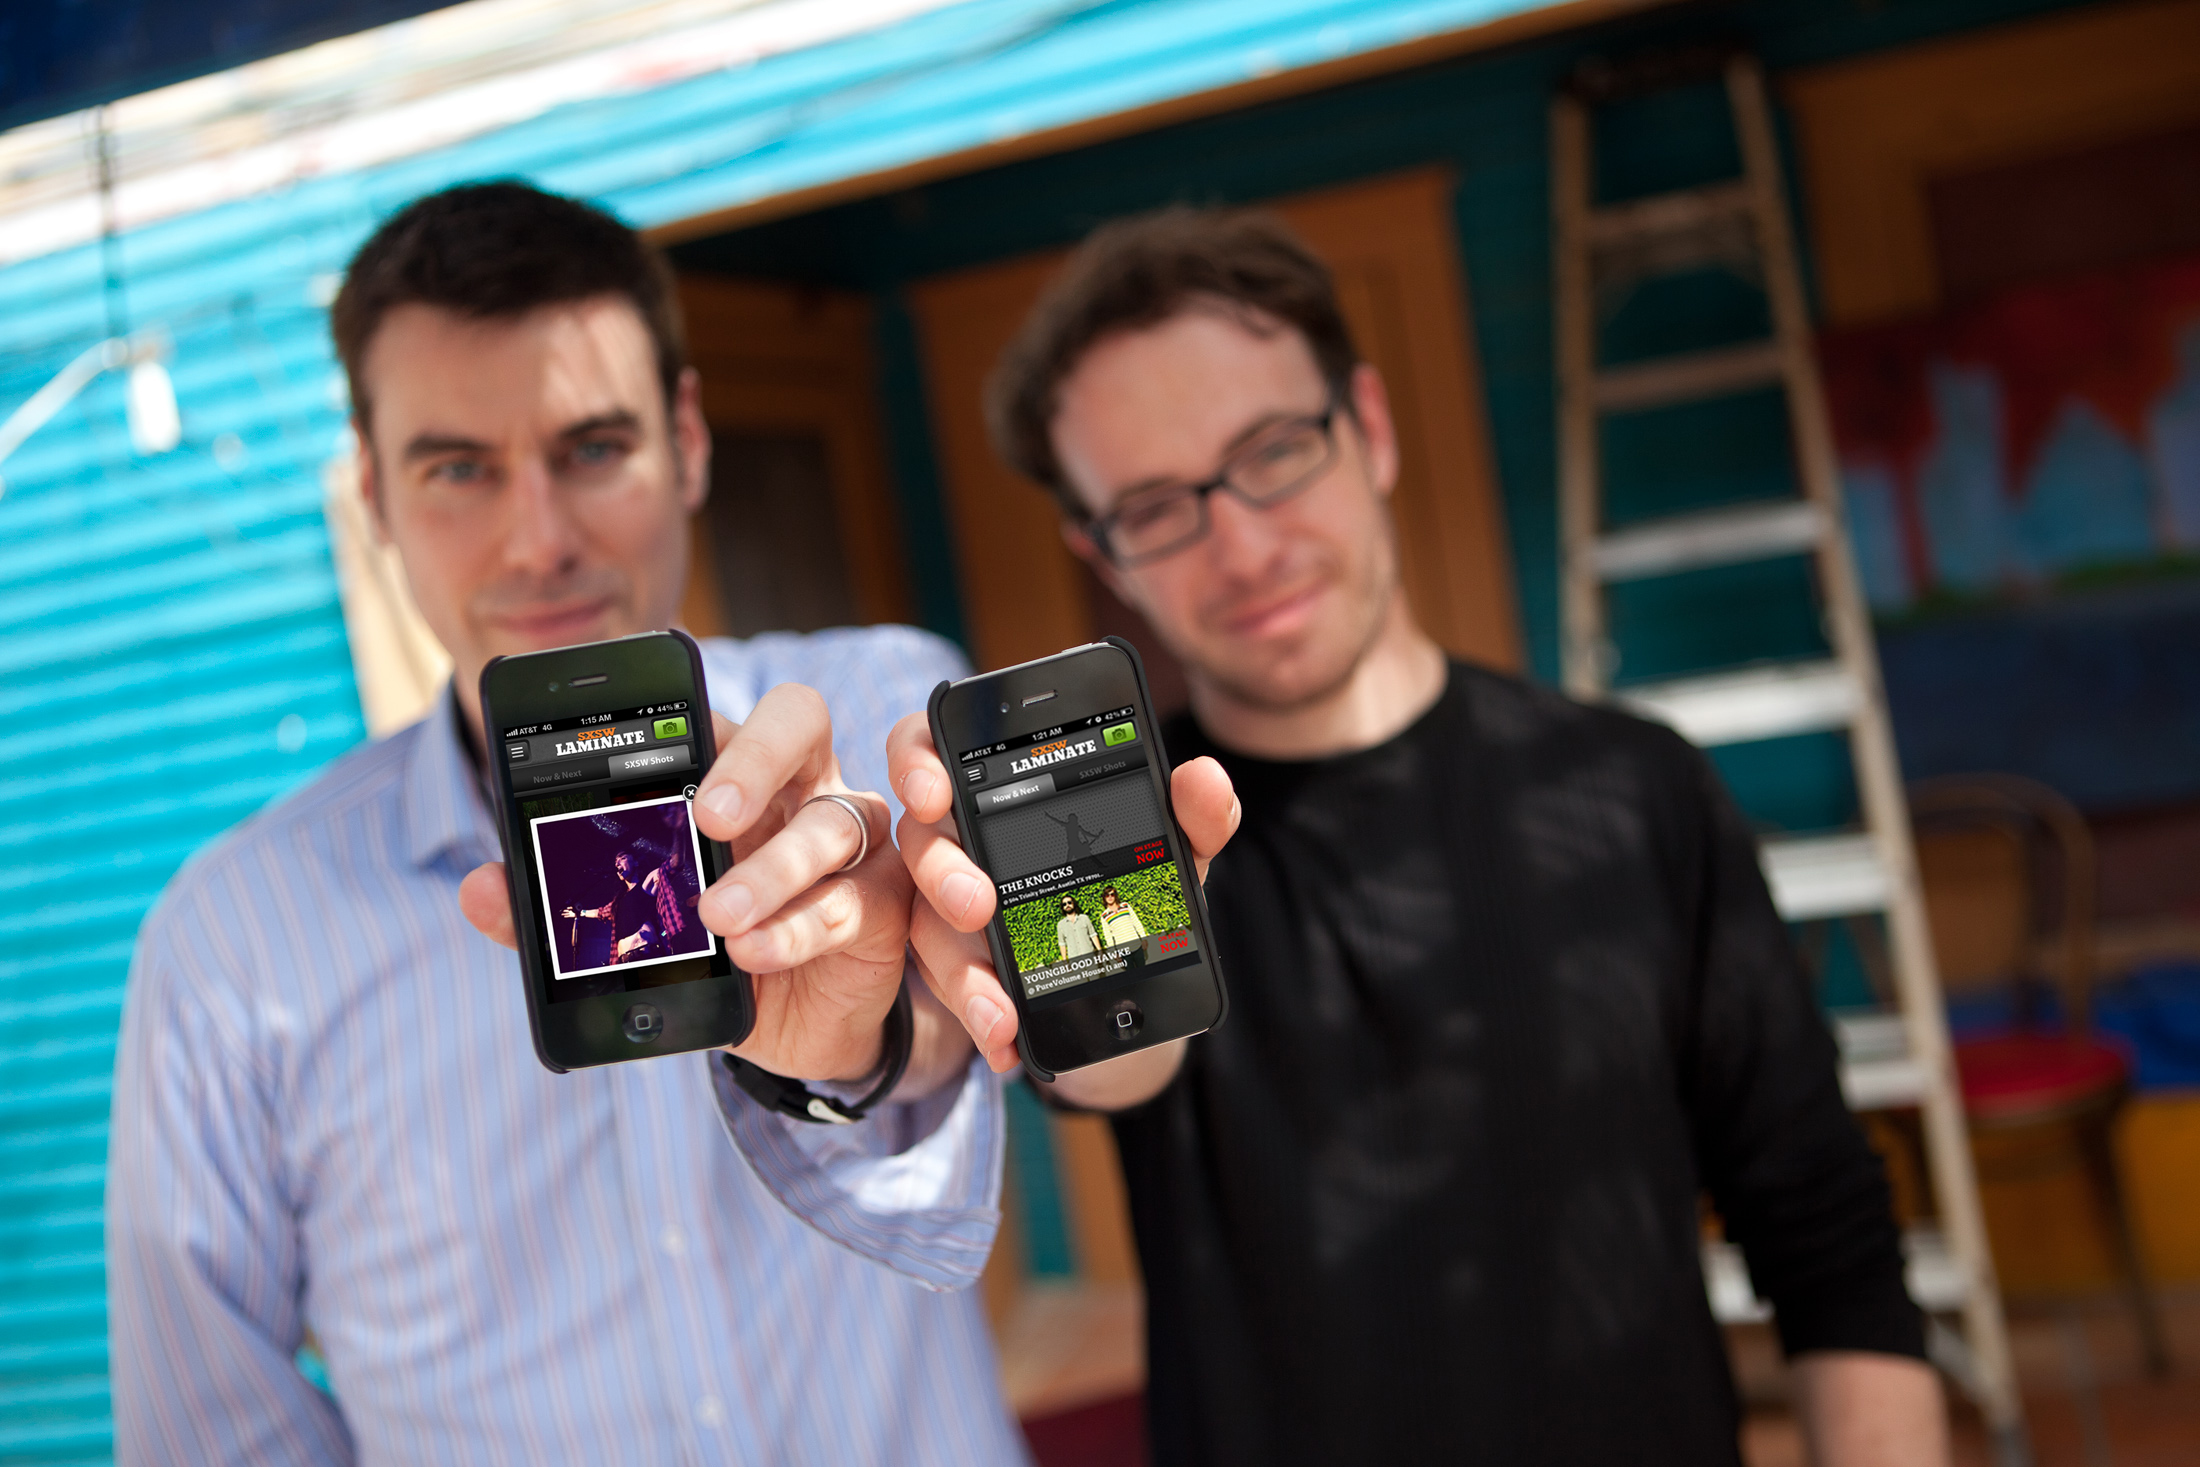 Eric Garland (left) and Ethan Kaplan (right), creators of LN Labs